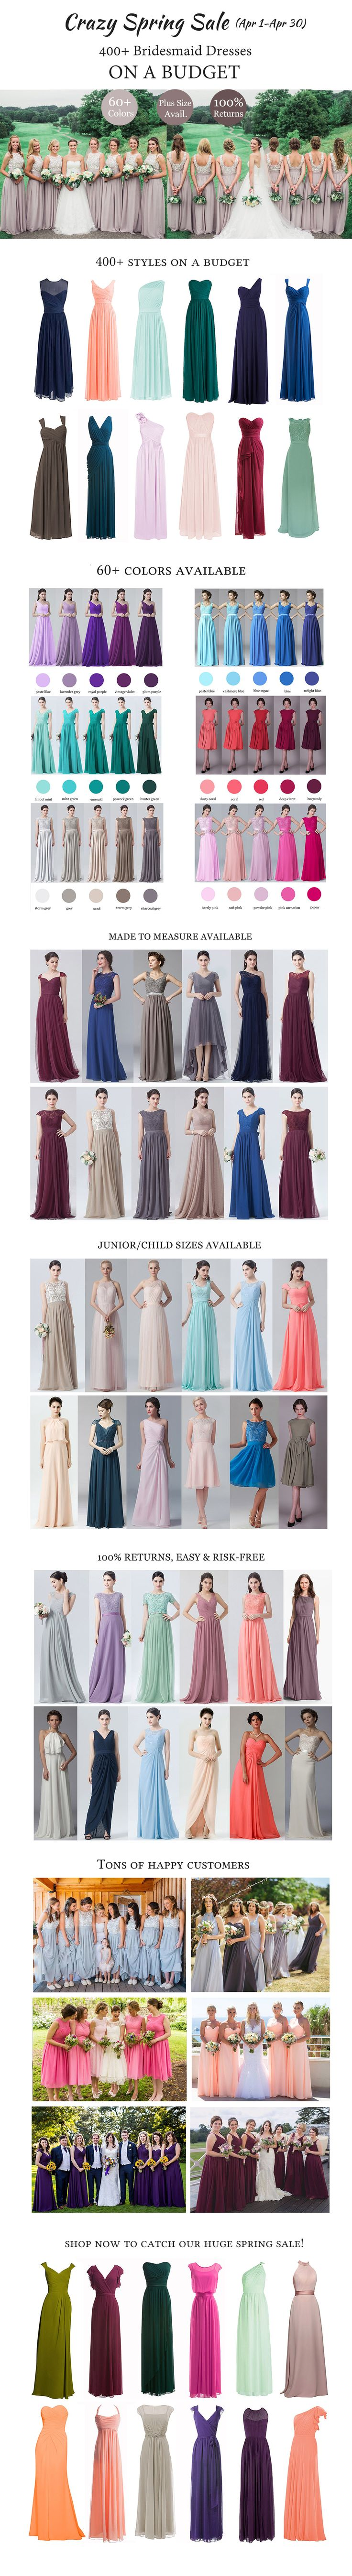 Now through May 31, Crazy Spring Sale on ALL FHFH bridesmaid dresses! Don't miss it!